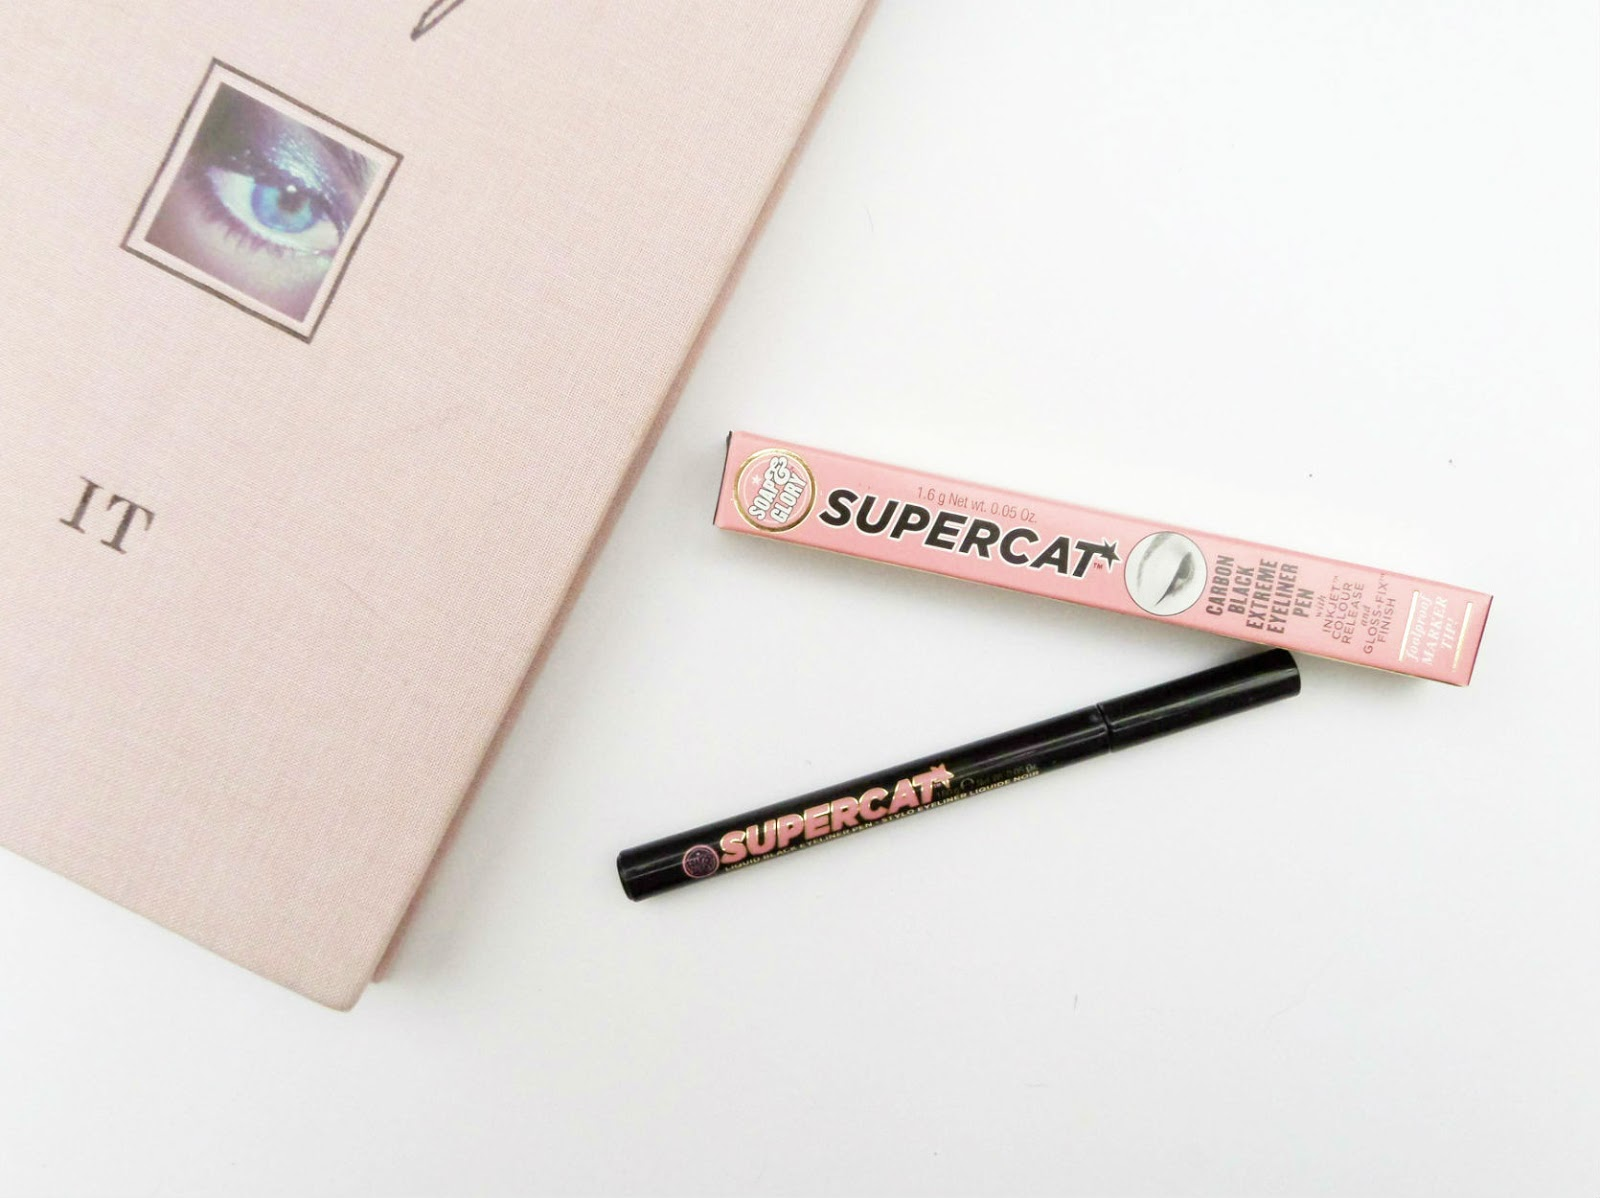 The Soap and Glory Supercat Eyeliner Pen